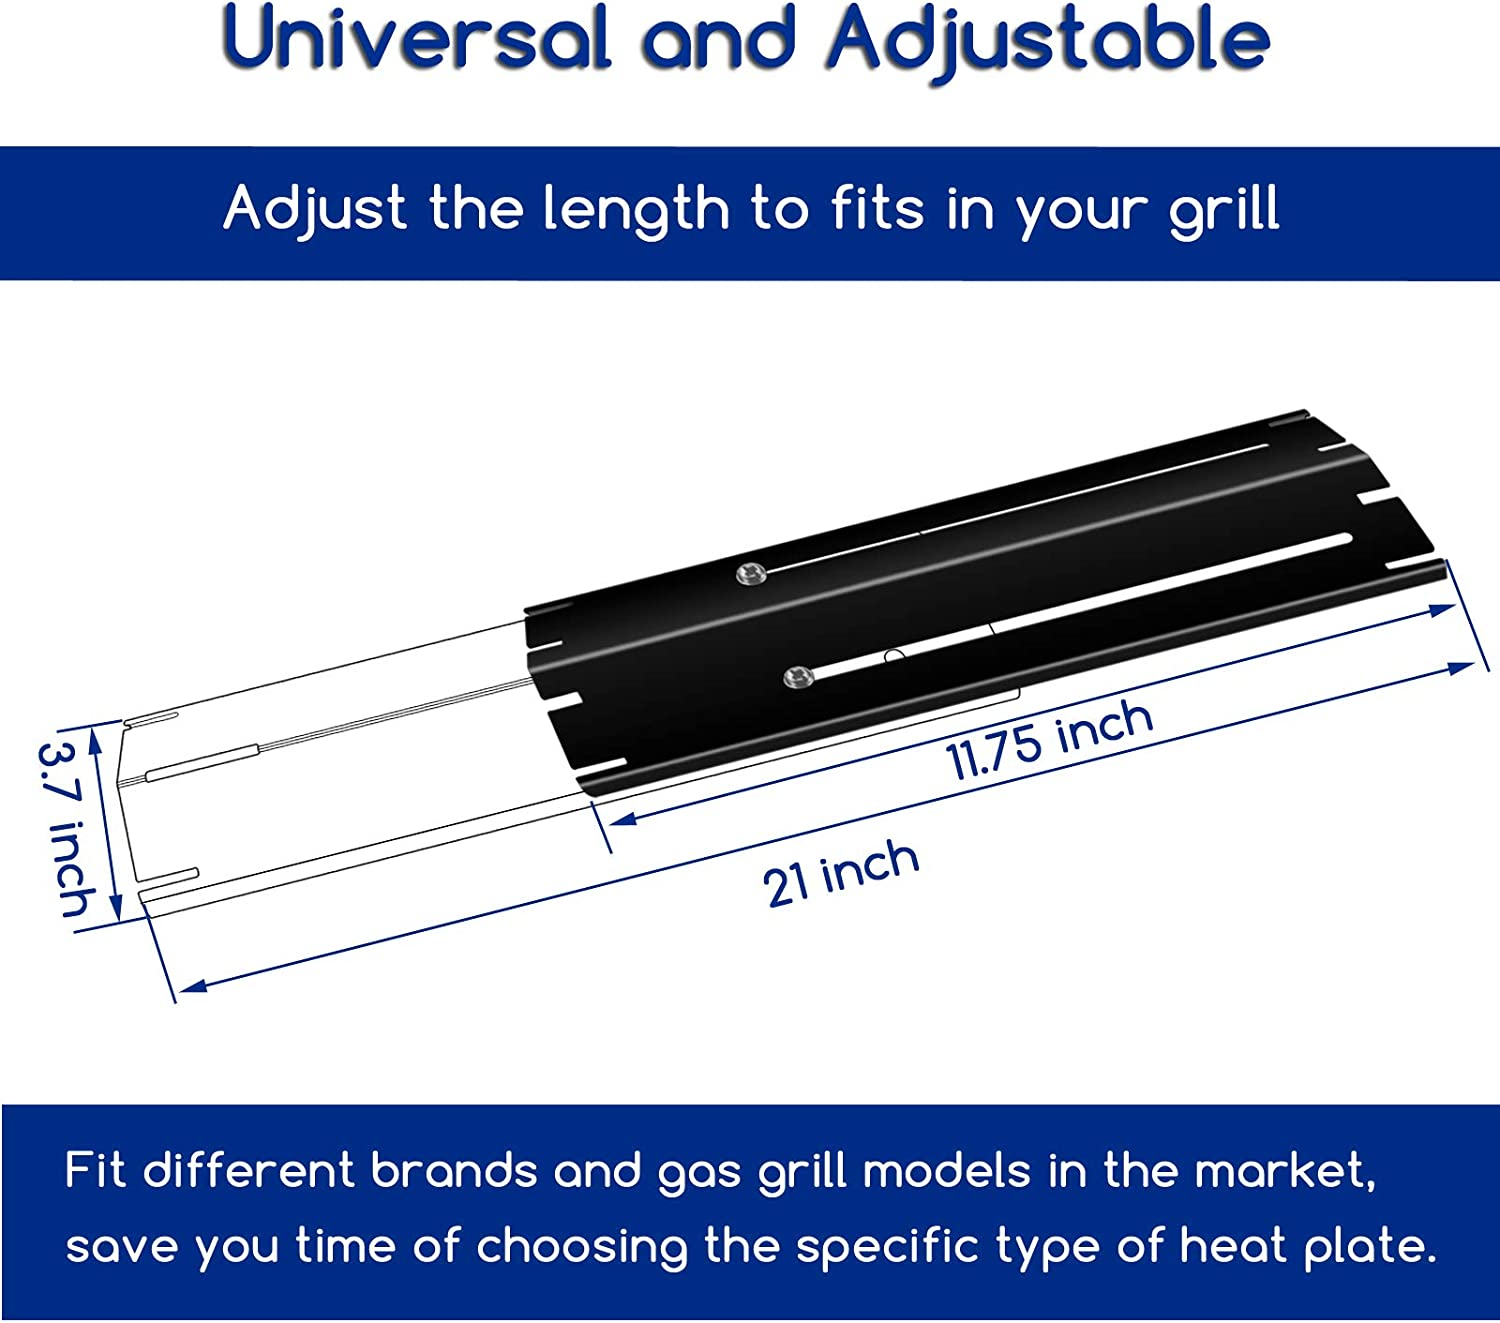 Heat Plates Shield Extends from 11.75 up to 21 Inch Utheer Universal Adjustable Flavor Bars Heavy Duty Porcelain Steel Replacements 1 Pcs Flame Tamer Heat Tent for Brinkmann Charbroil Gas Grill